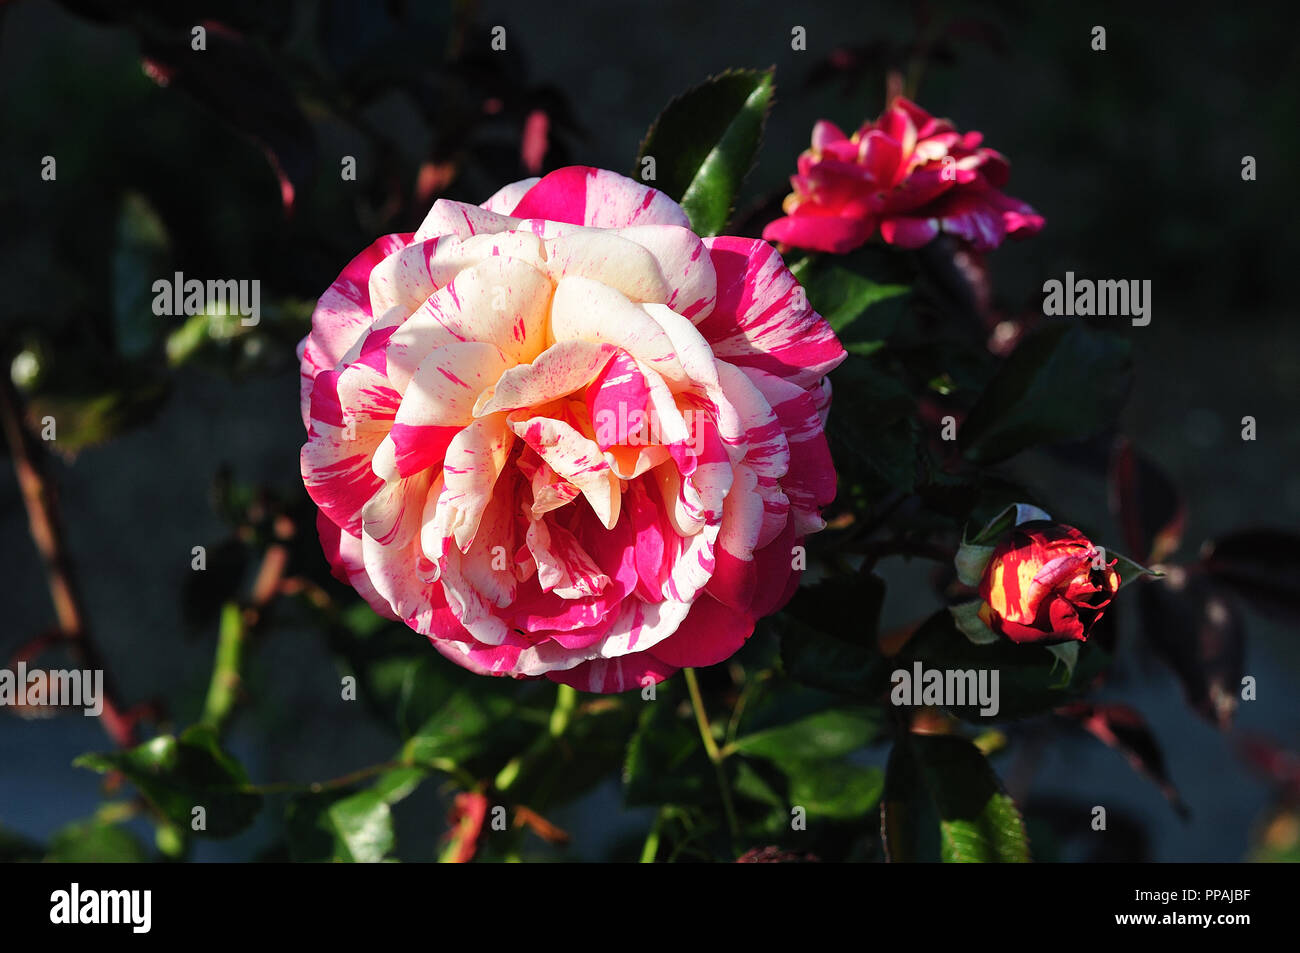 flower of rose cultivar Broceliande with creamy white and pink petals - Stock Image